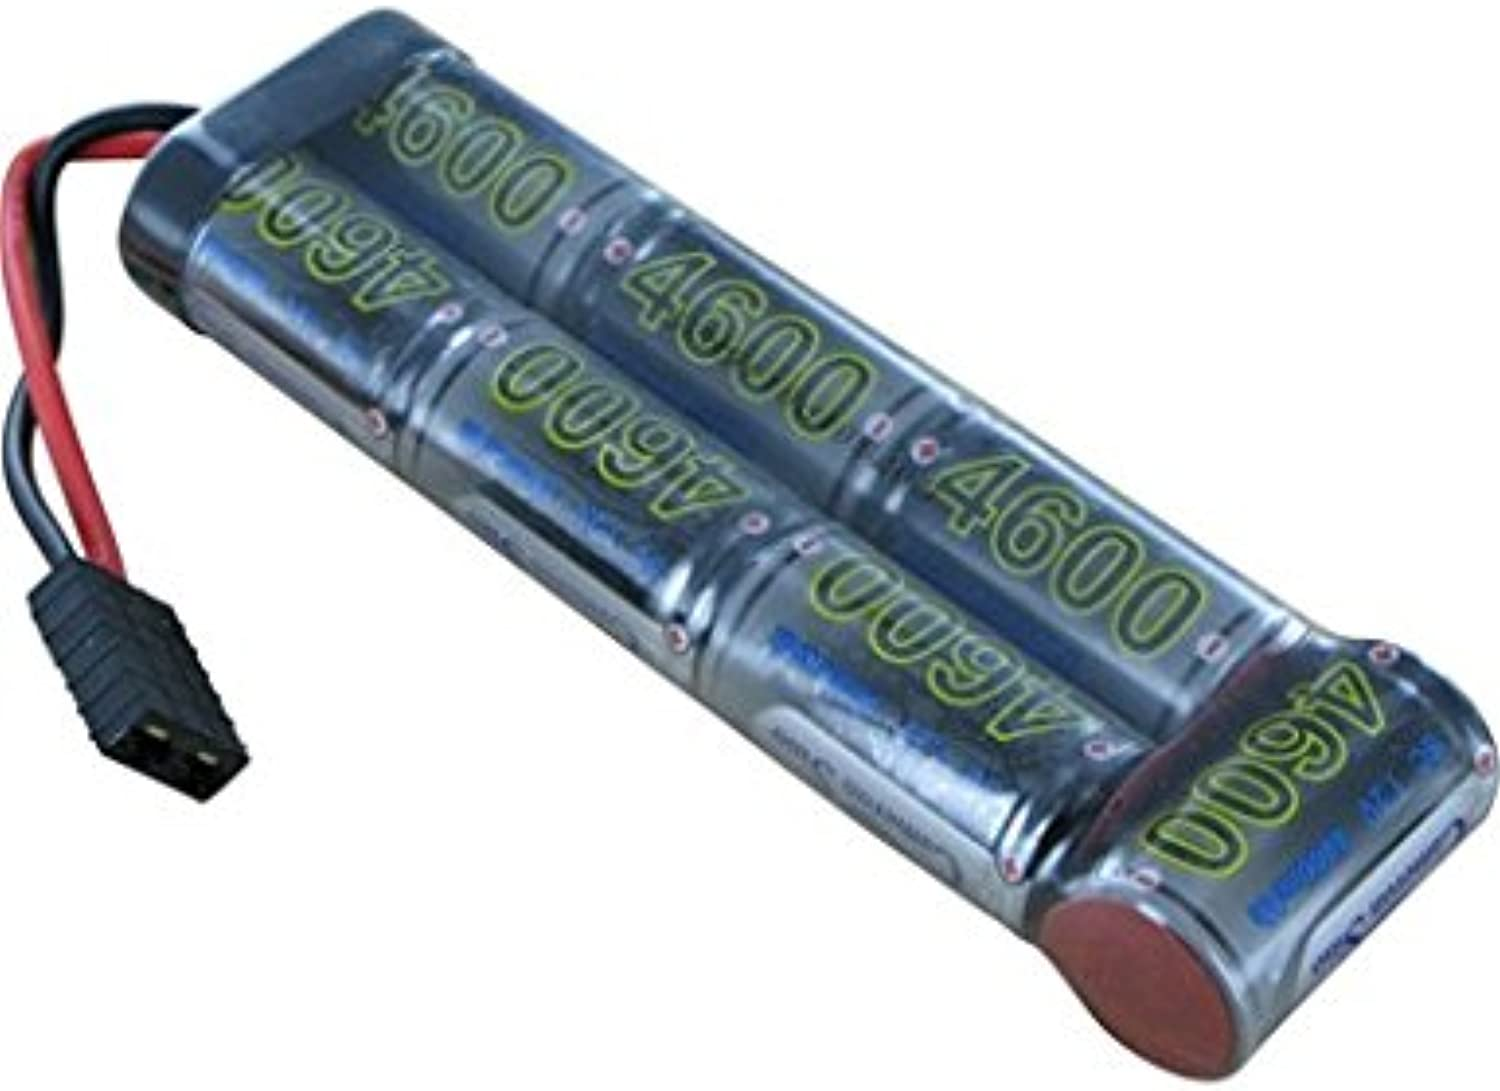 Battery type ABOUTBATTERIES CSNS460D47C012, 8.4V, 4600mAh, NiMH